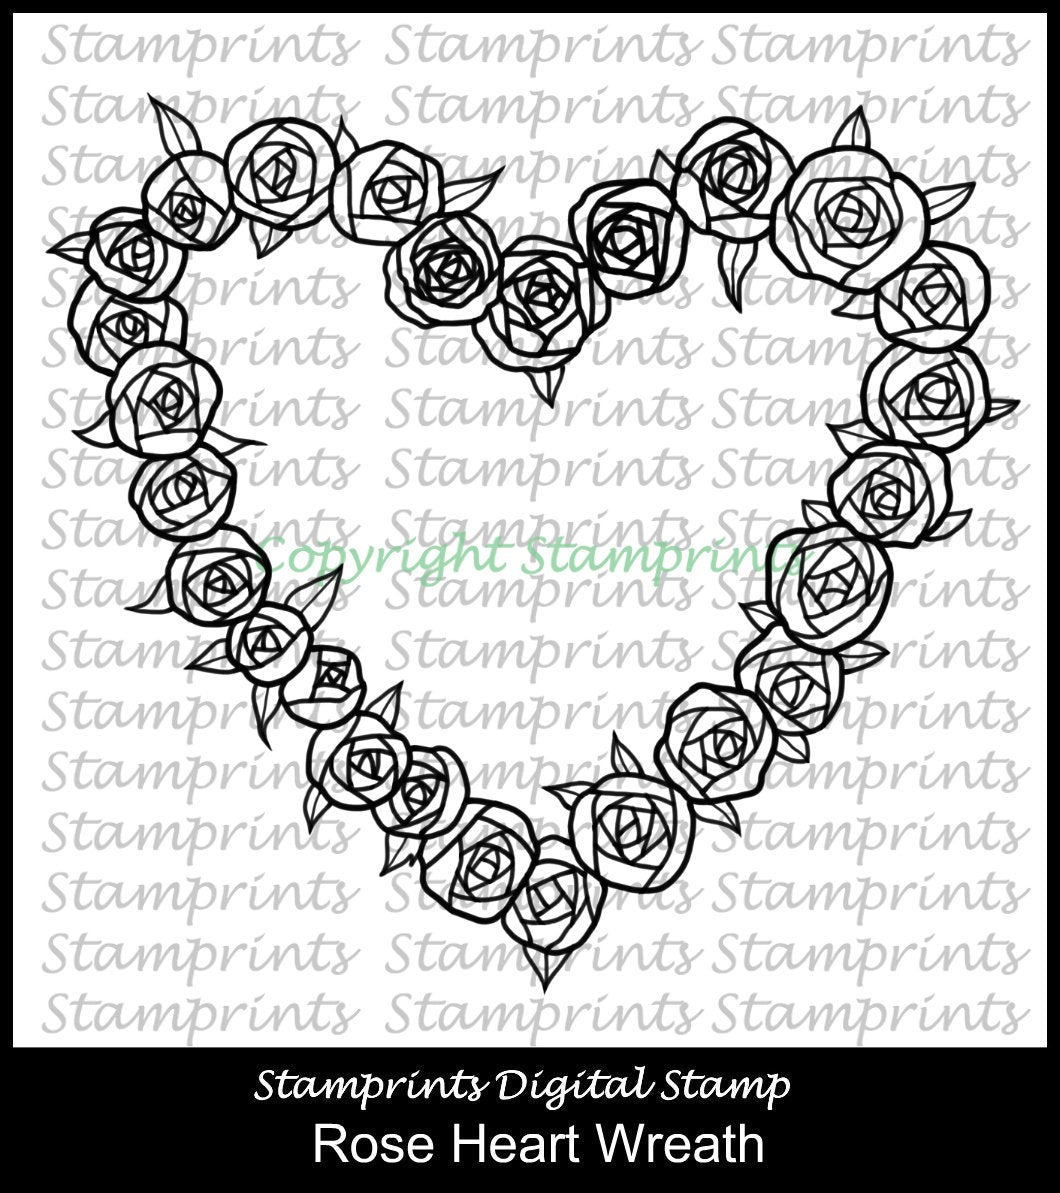 Rose Heart Wreath (TLS-1945) Digital Stamp. Printable